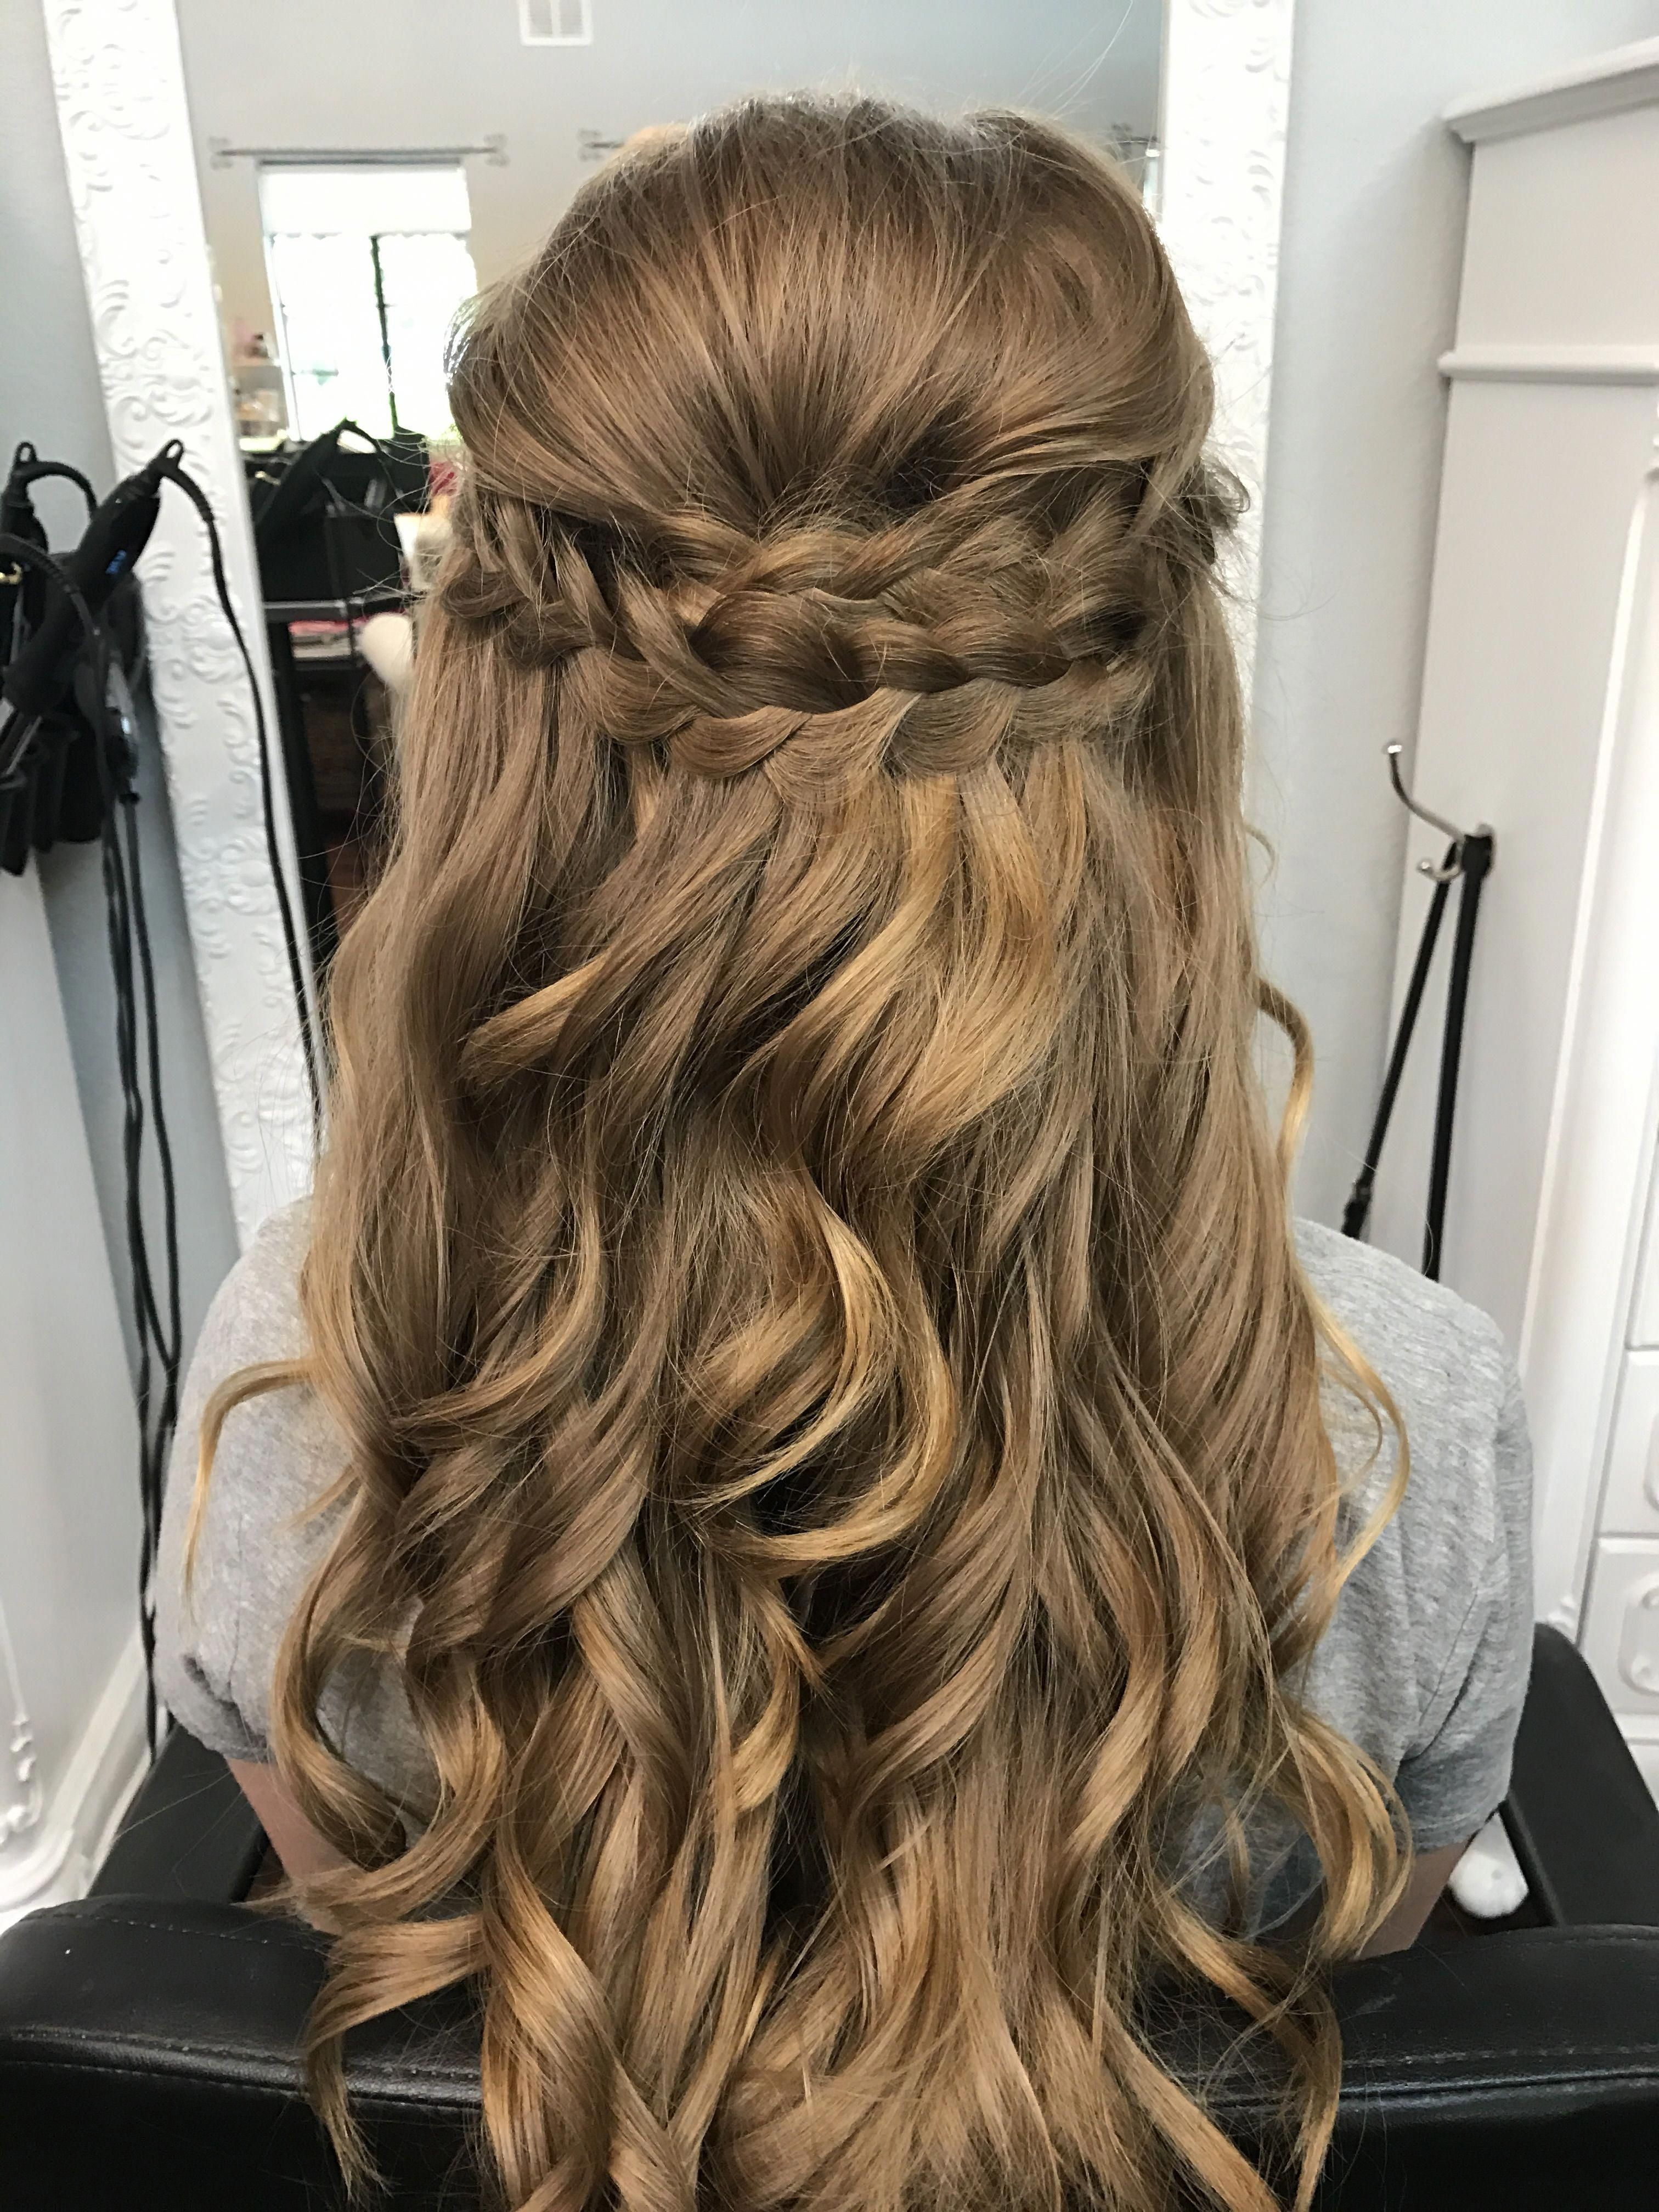 Latest Braided Half Up Hairstyles Regarding Hairstyles : Braided Half Up Down Prom Hair Then Hairstyles (View 10 of 20)